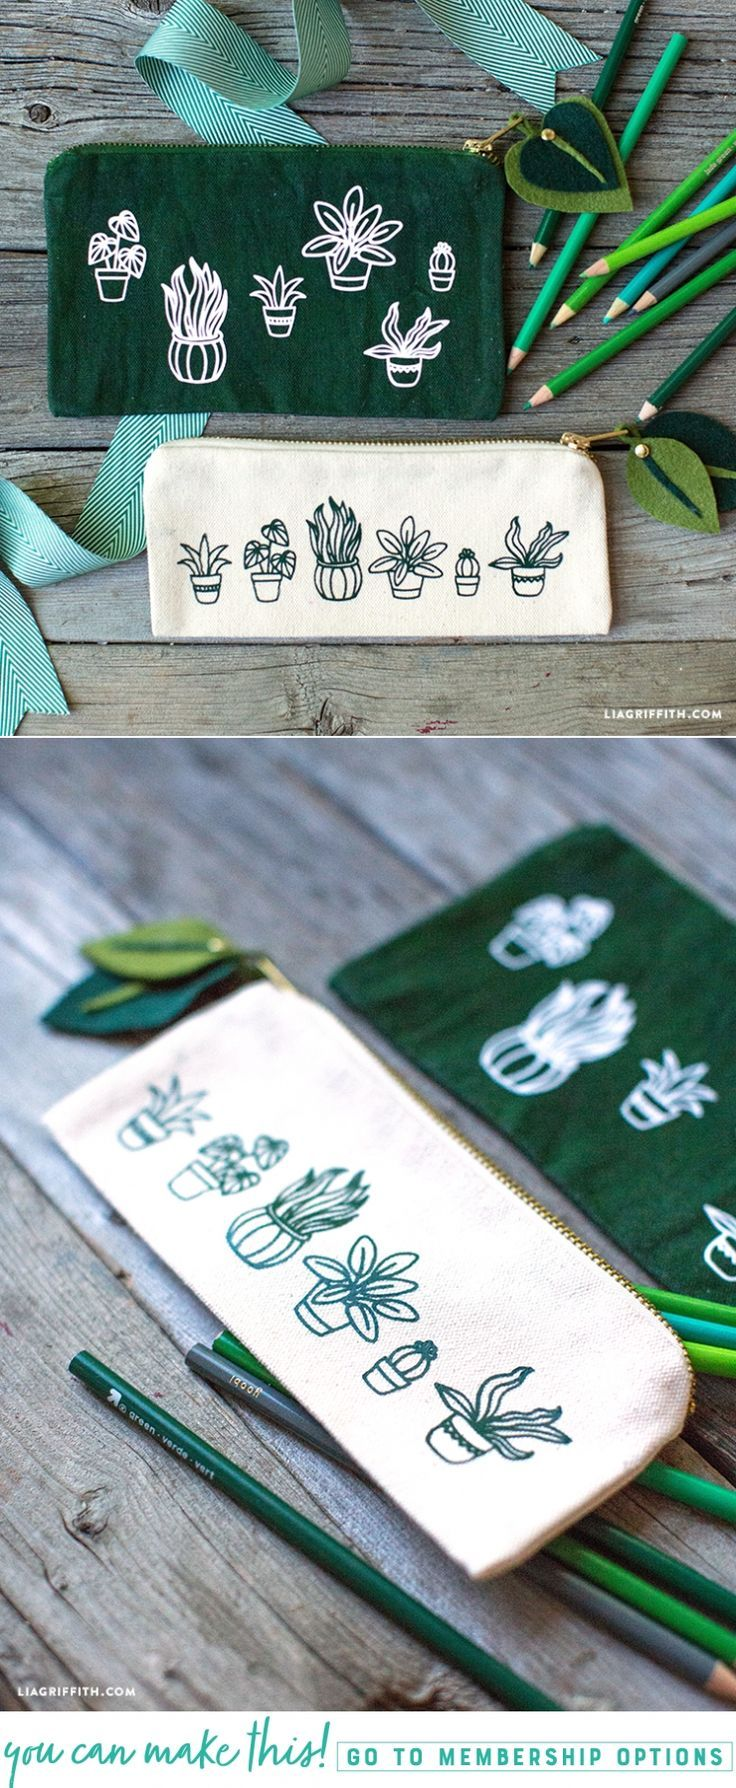 778 best Needles and pins images on Pinterest | Sewing ideas, Sewing ...